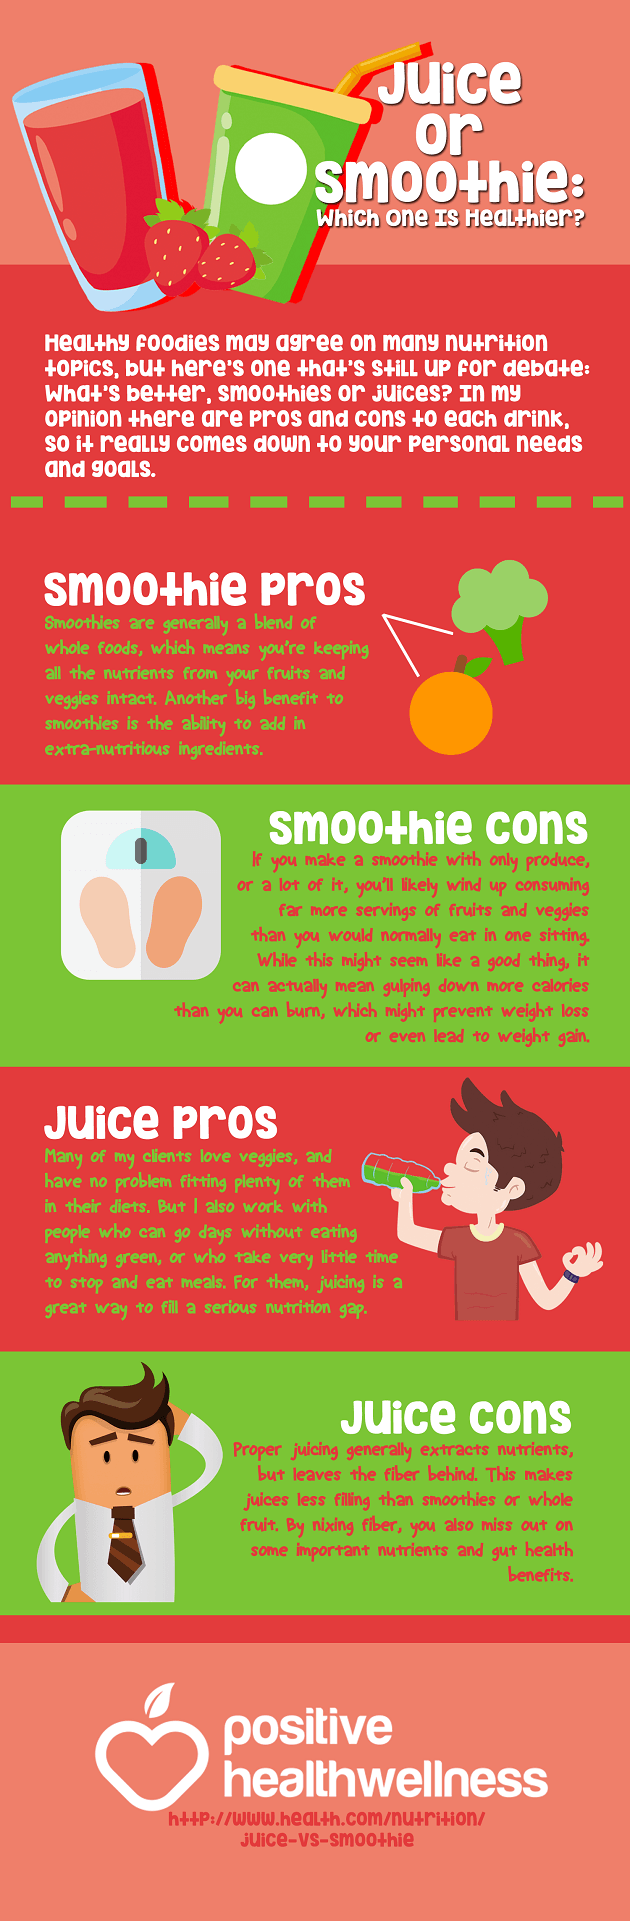 Juice or Smoothie: Which One Is Healthier?